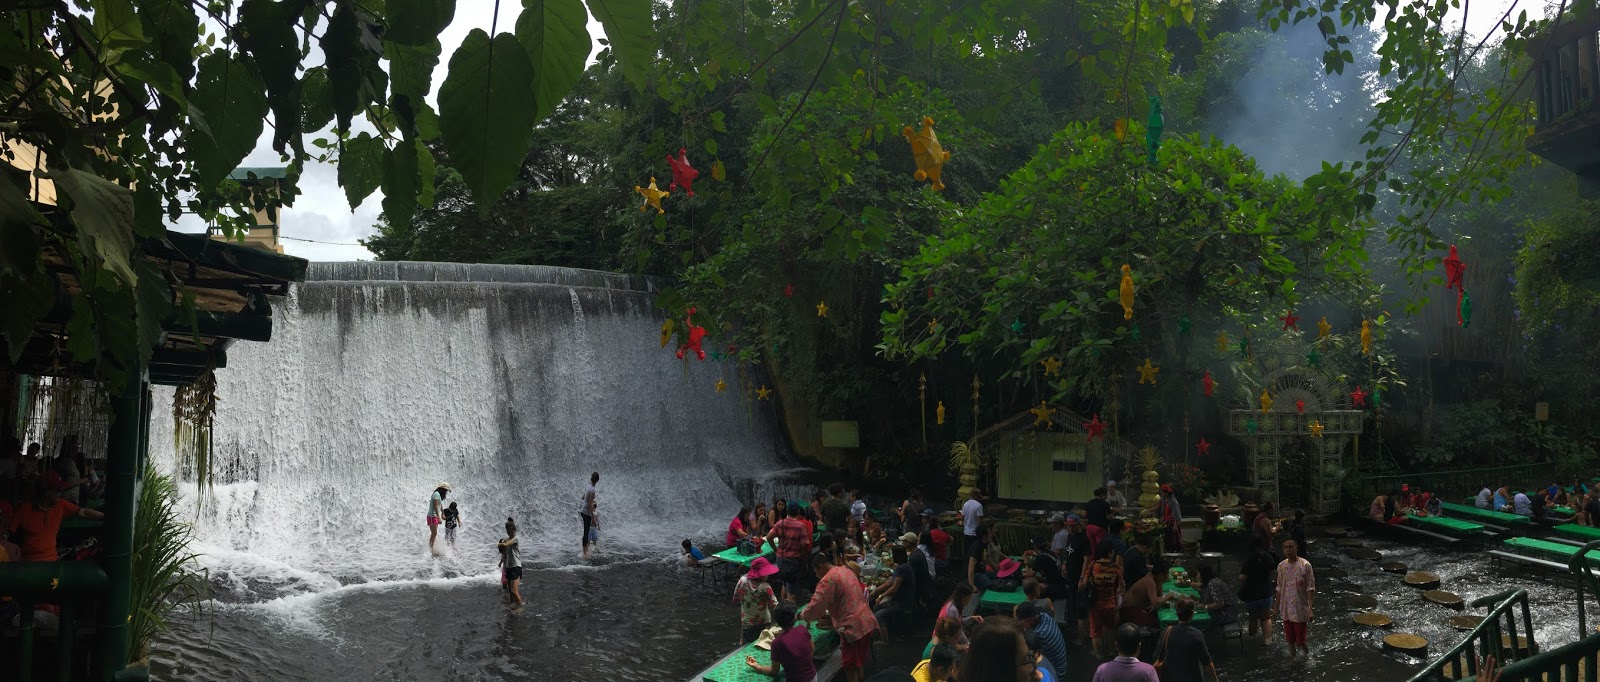 Experience Filipino Culture at Villa Escudero